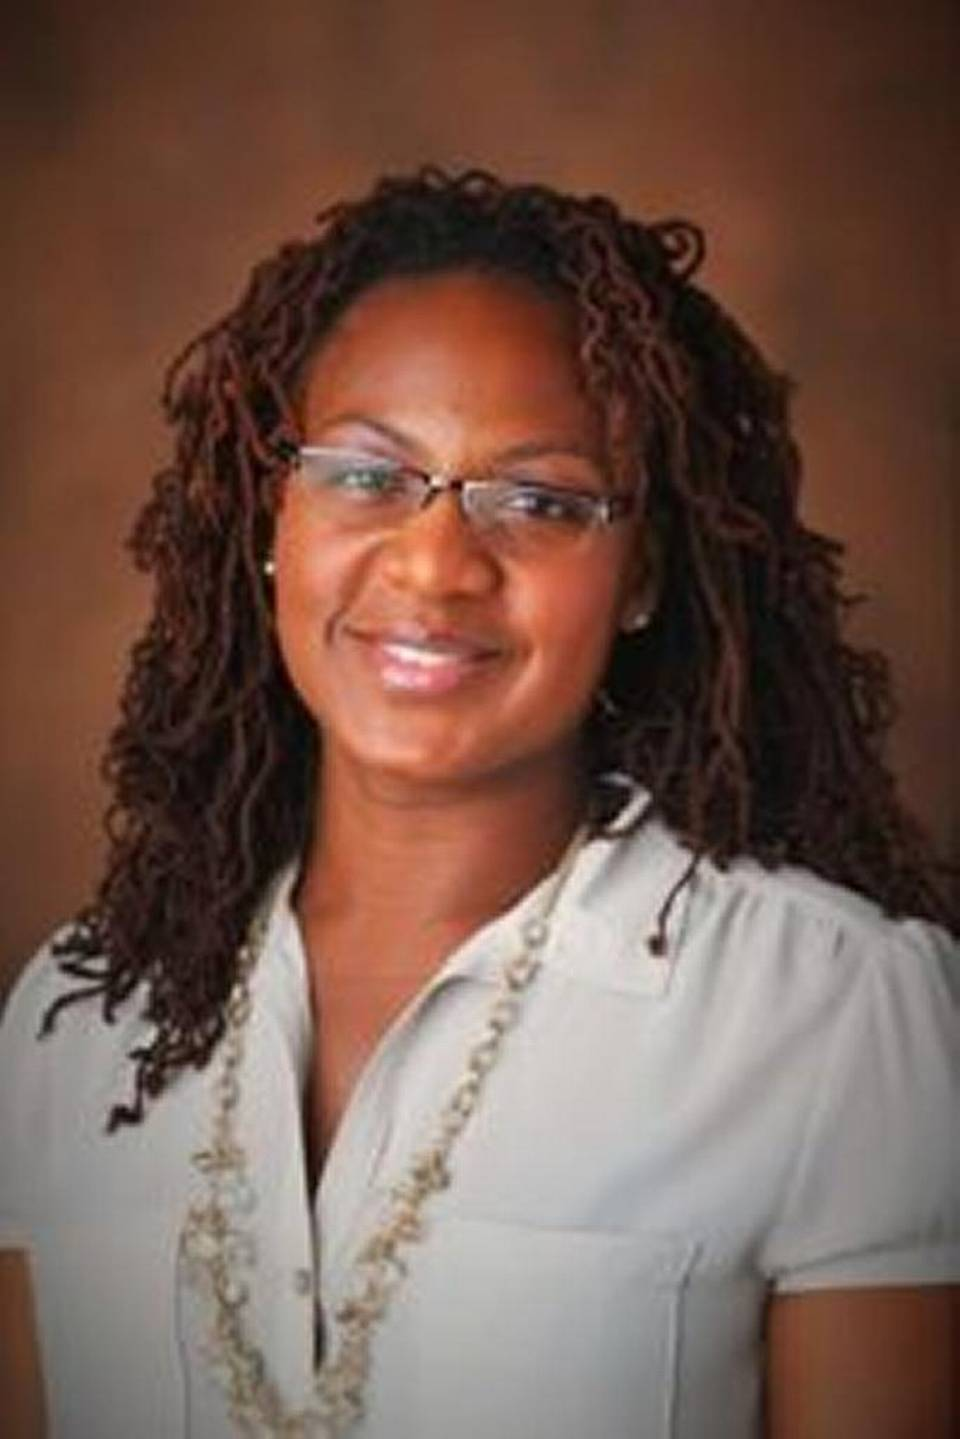 Jeannine Shante Skinner, 35,a professor at UNC Charlotte, was found dead in an apartment in Charlotte, North Carolina on Friday. Police are looking for 45-year-old Donny Lewis Franklin in the murder.